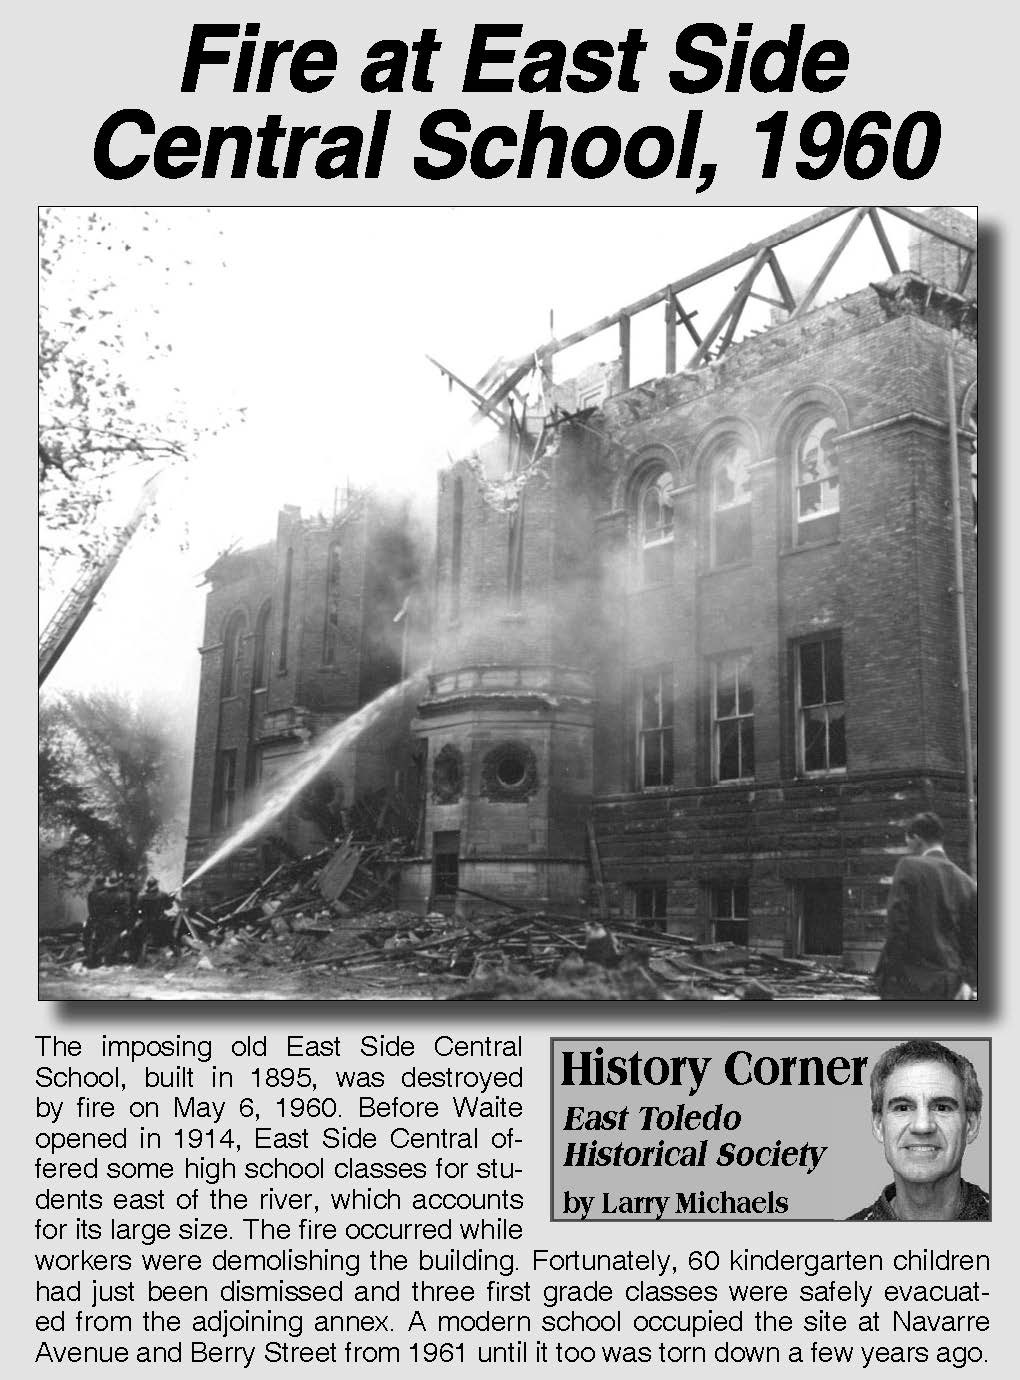 Fire at East Side Central School, 1960